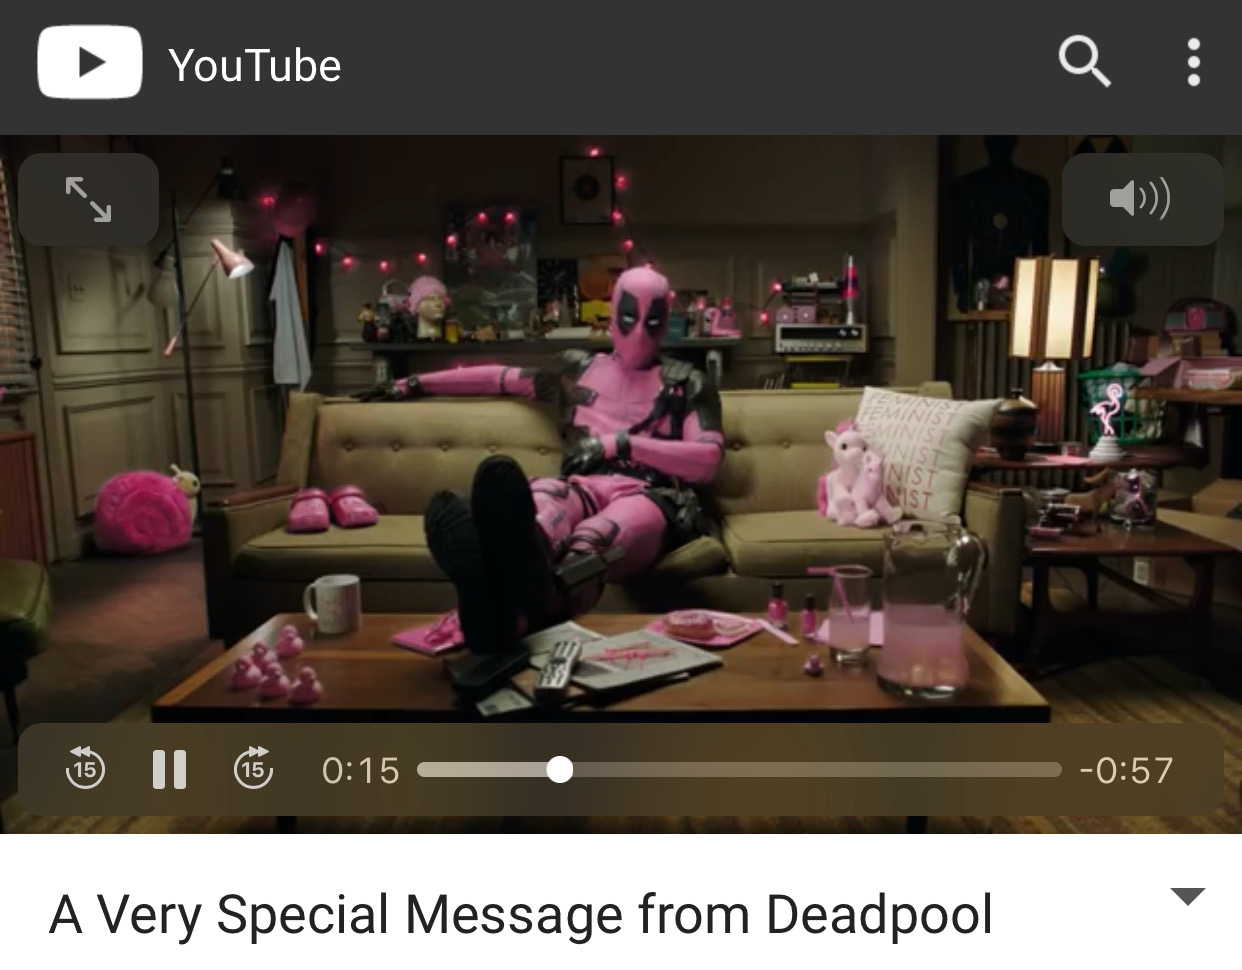 WATCH: Ryan Reynolds Auctioning Off Pink Deadpool Suit to Fight Cancer